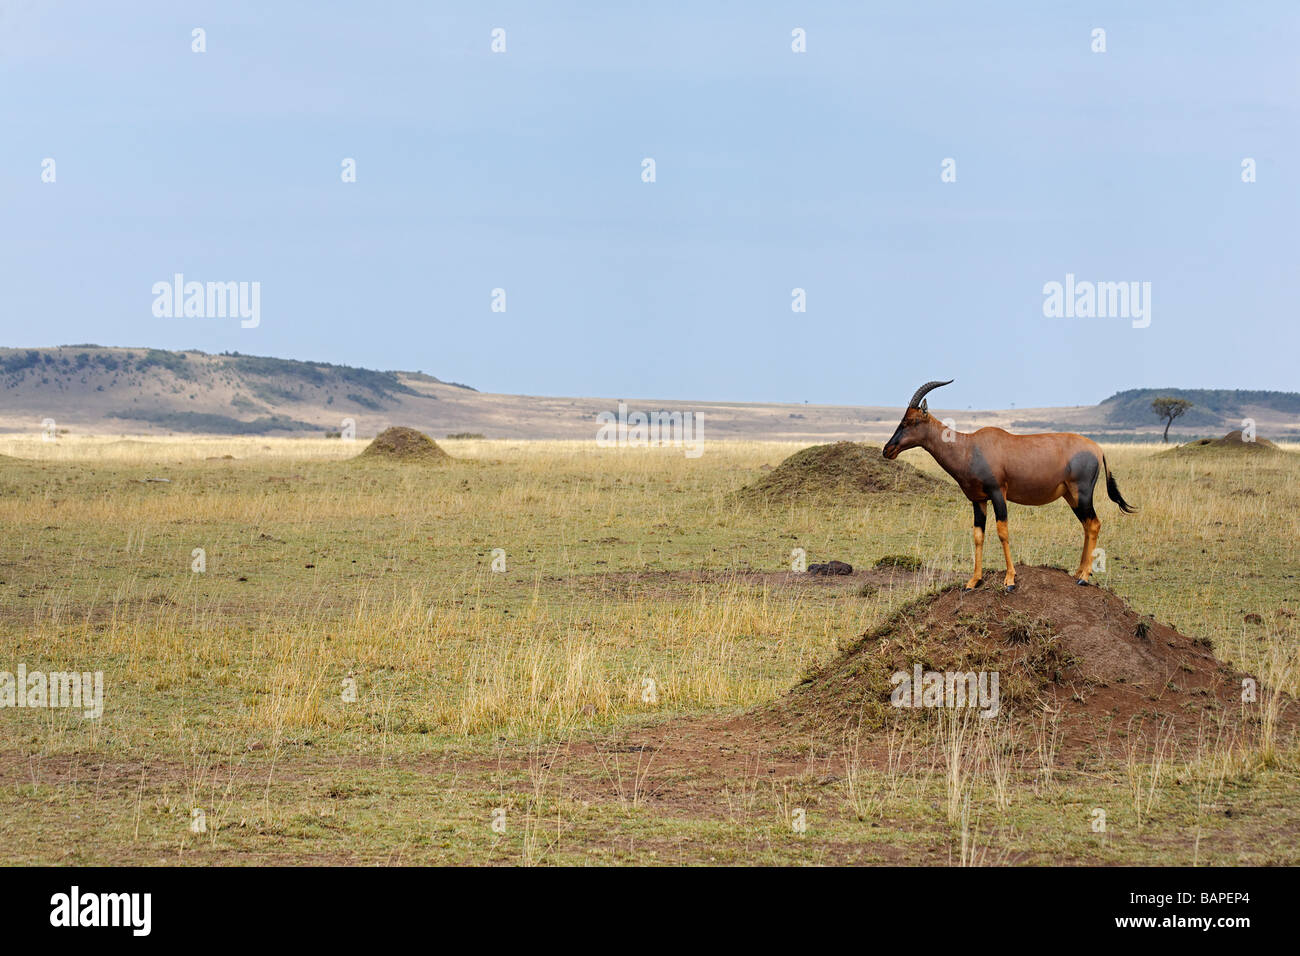 Topi on the look out atop a termite mound in the Masai Mara National Reserve Kenya. - Stock Image